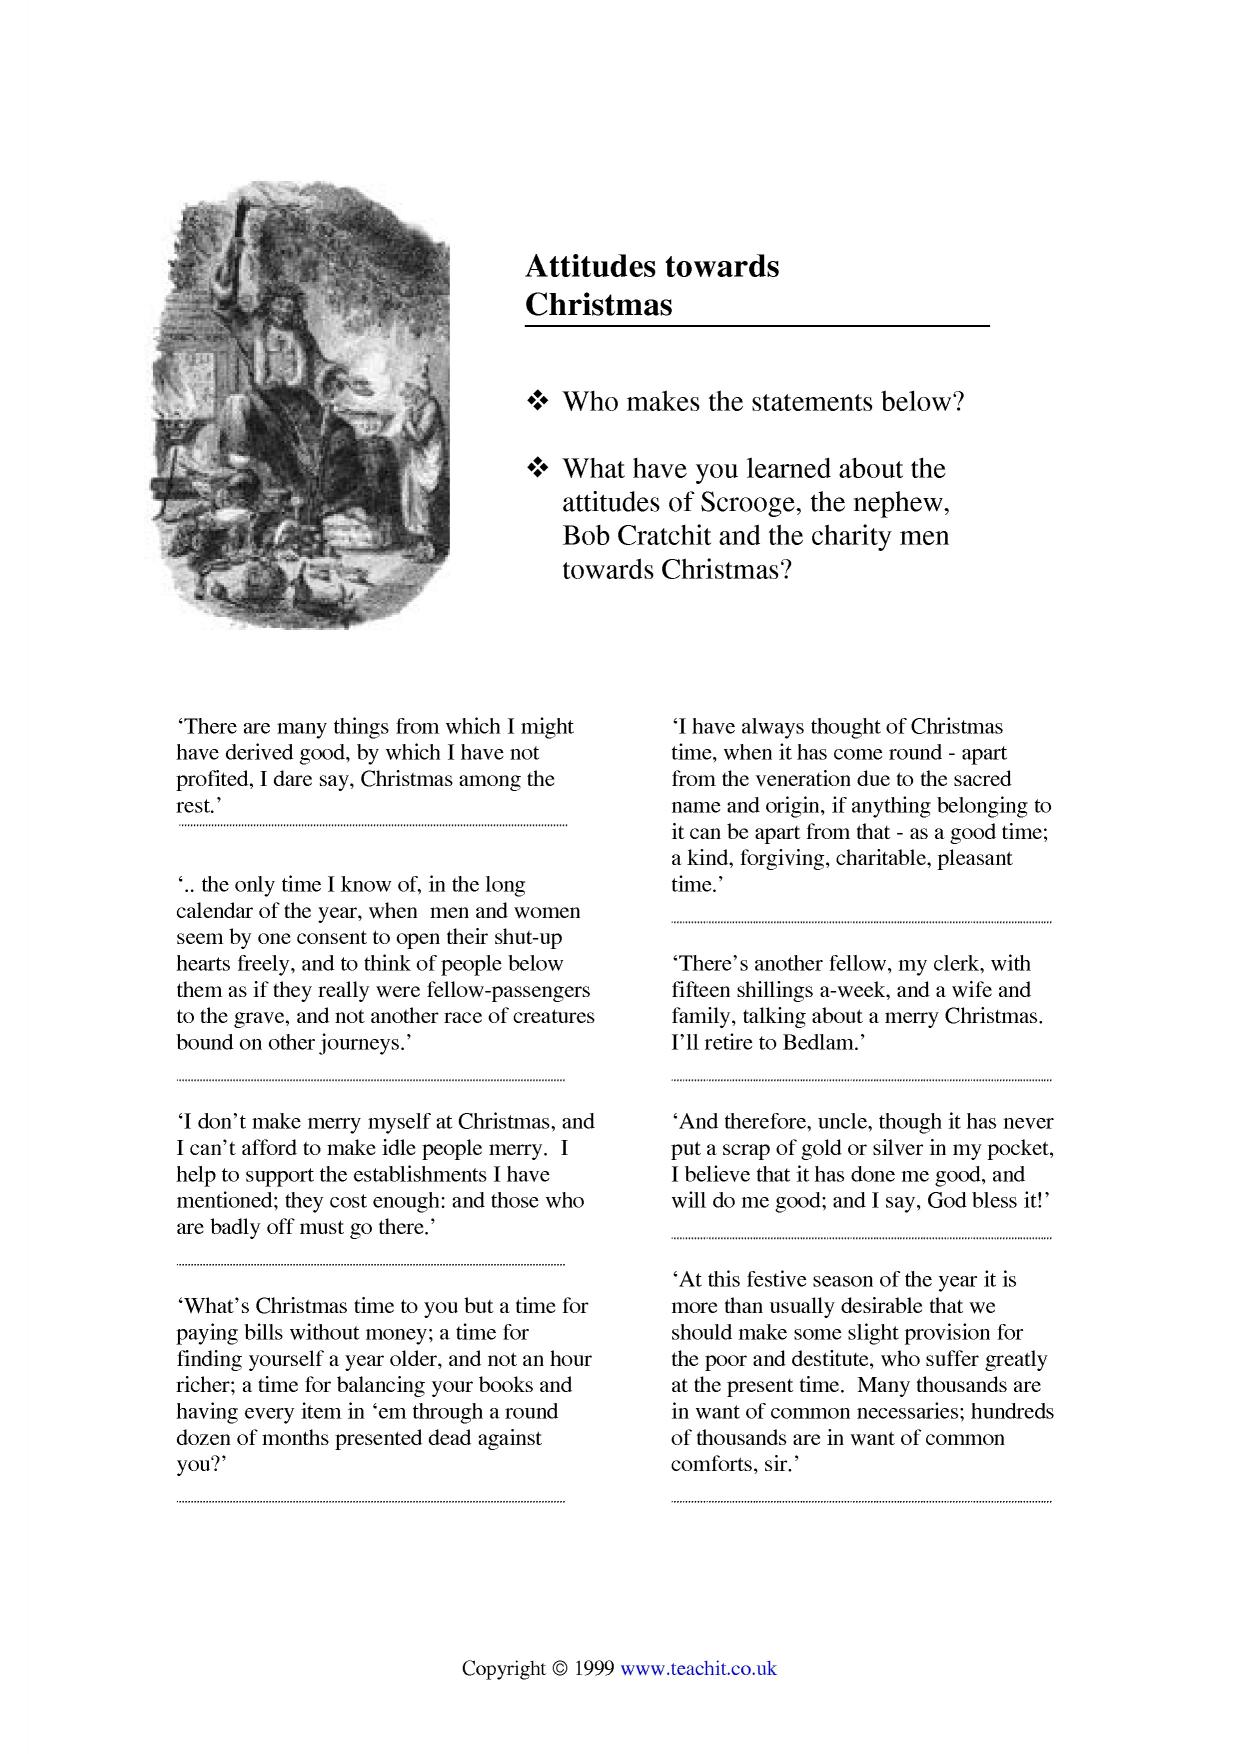 A Christmas Carol by Charles Dickens | KS3 Prose | Key Stage 3 | Resources